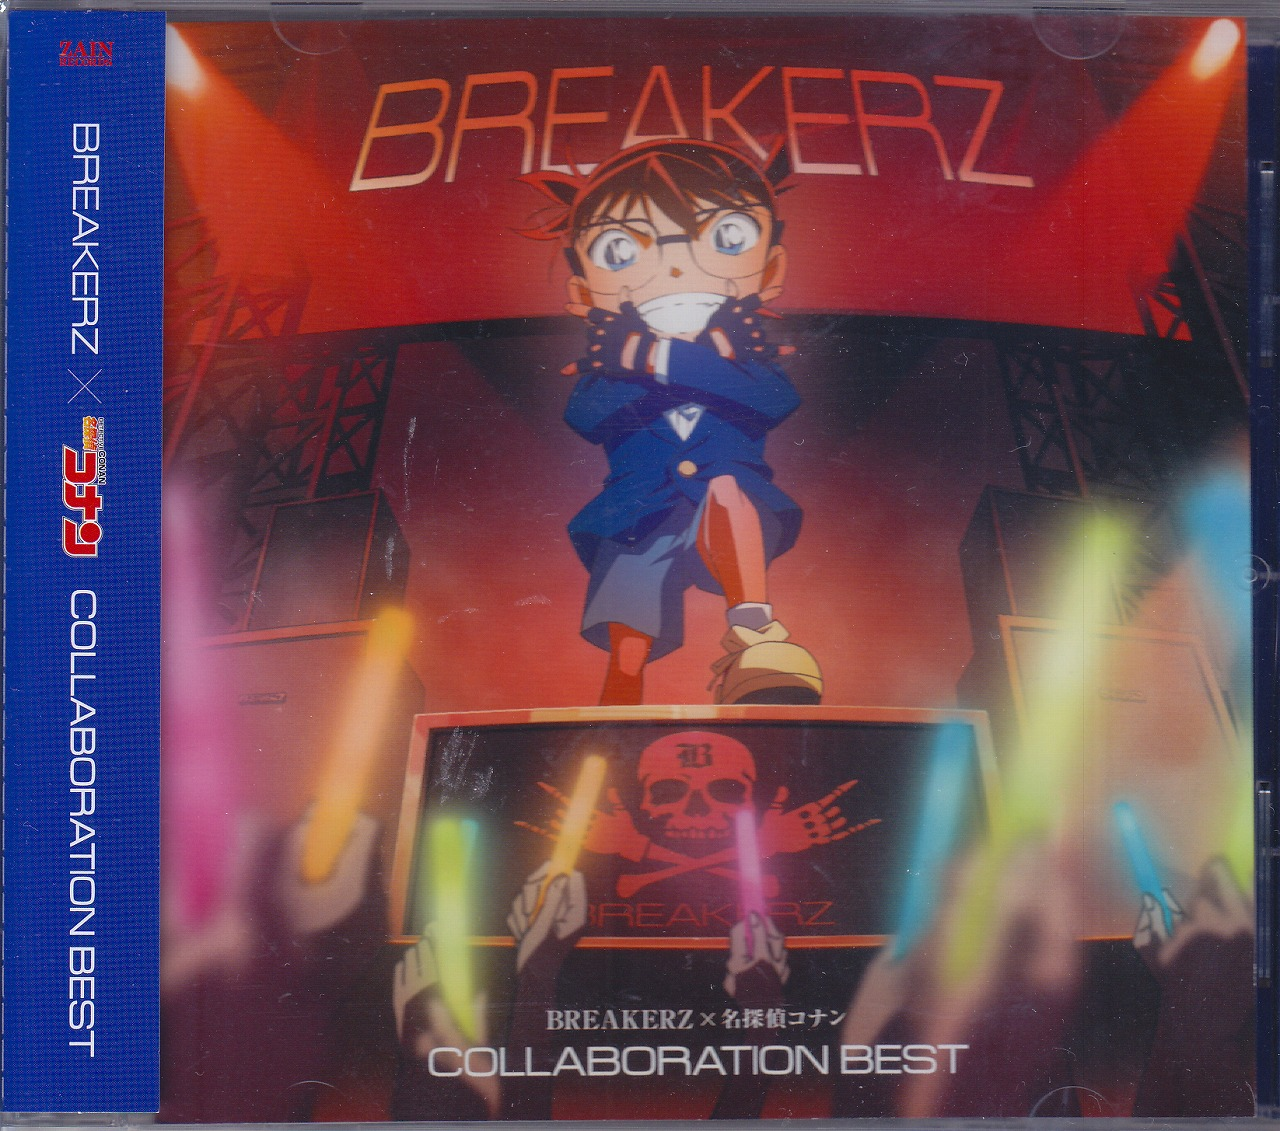 BREAKERZ ( ブレイカーズ )  の CD BREAKERZ×名探偵コナン COLLABORATION BEST